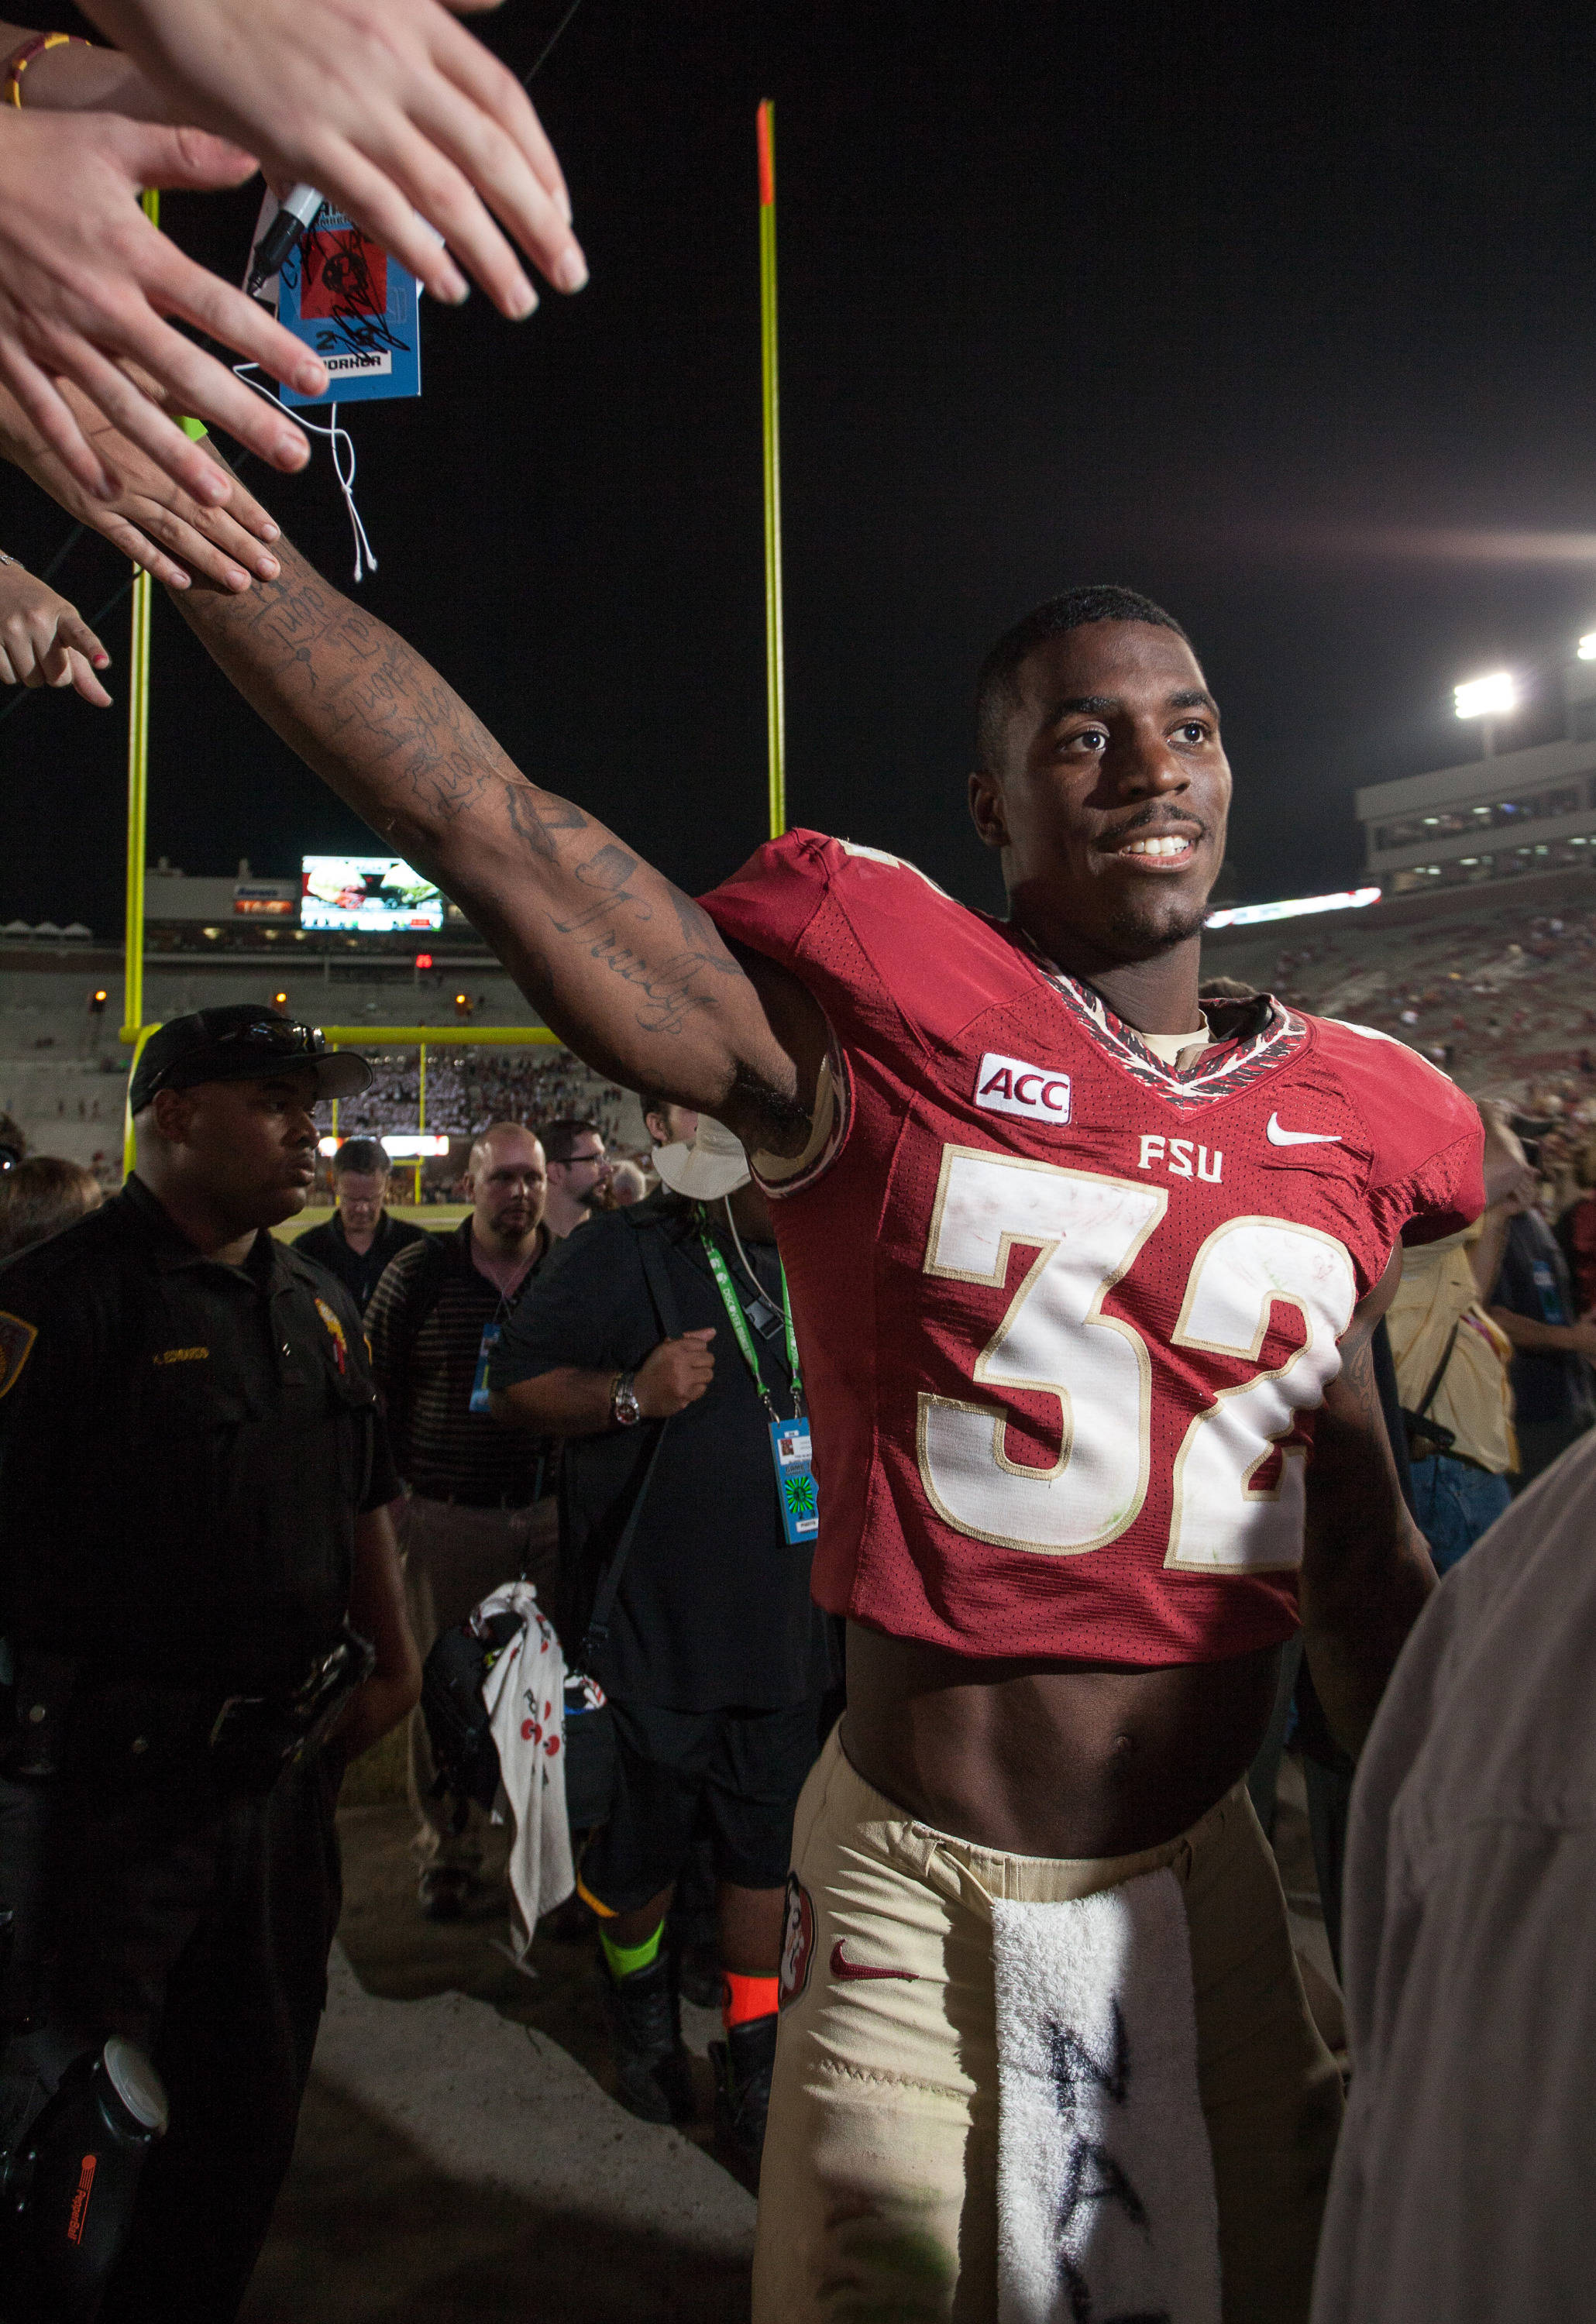 James Wilder, Jr. (32) high fives fans after FSU Football's 80-14 victory over Idaho in Tallahassee, Fla on Saturday, November 23, 2013. Photos by Mike Schwarz.